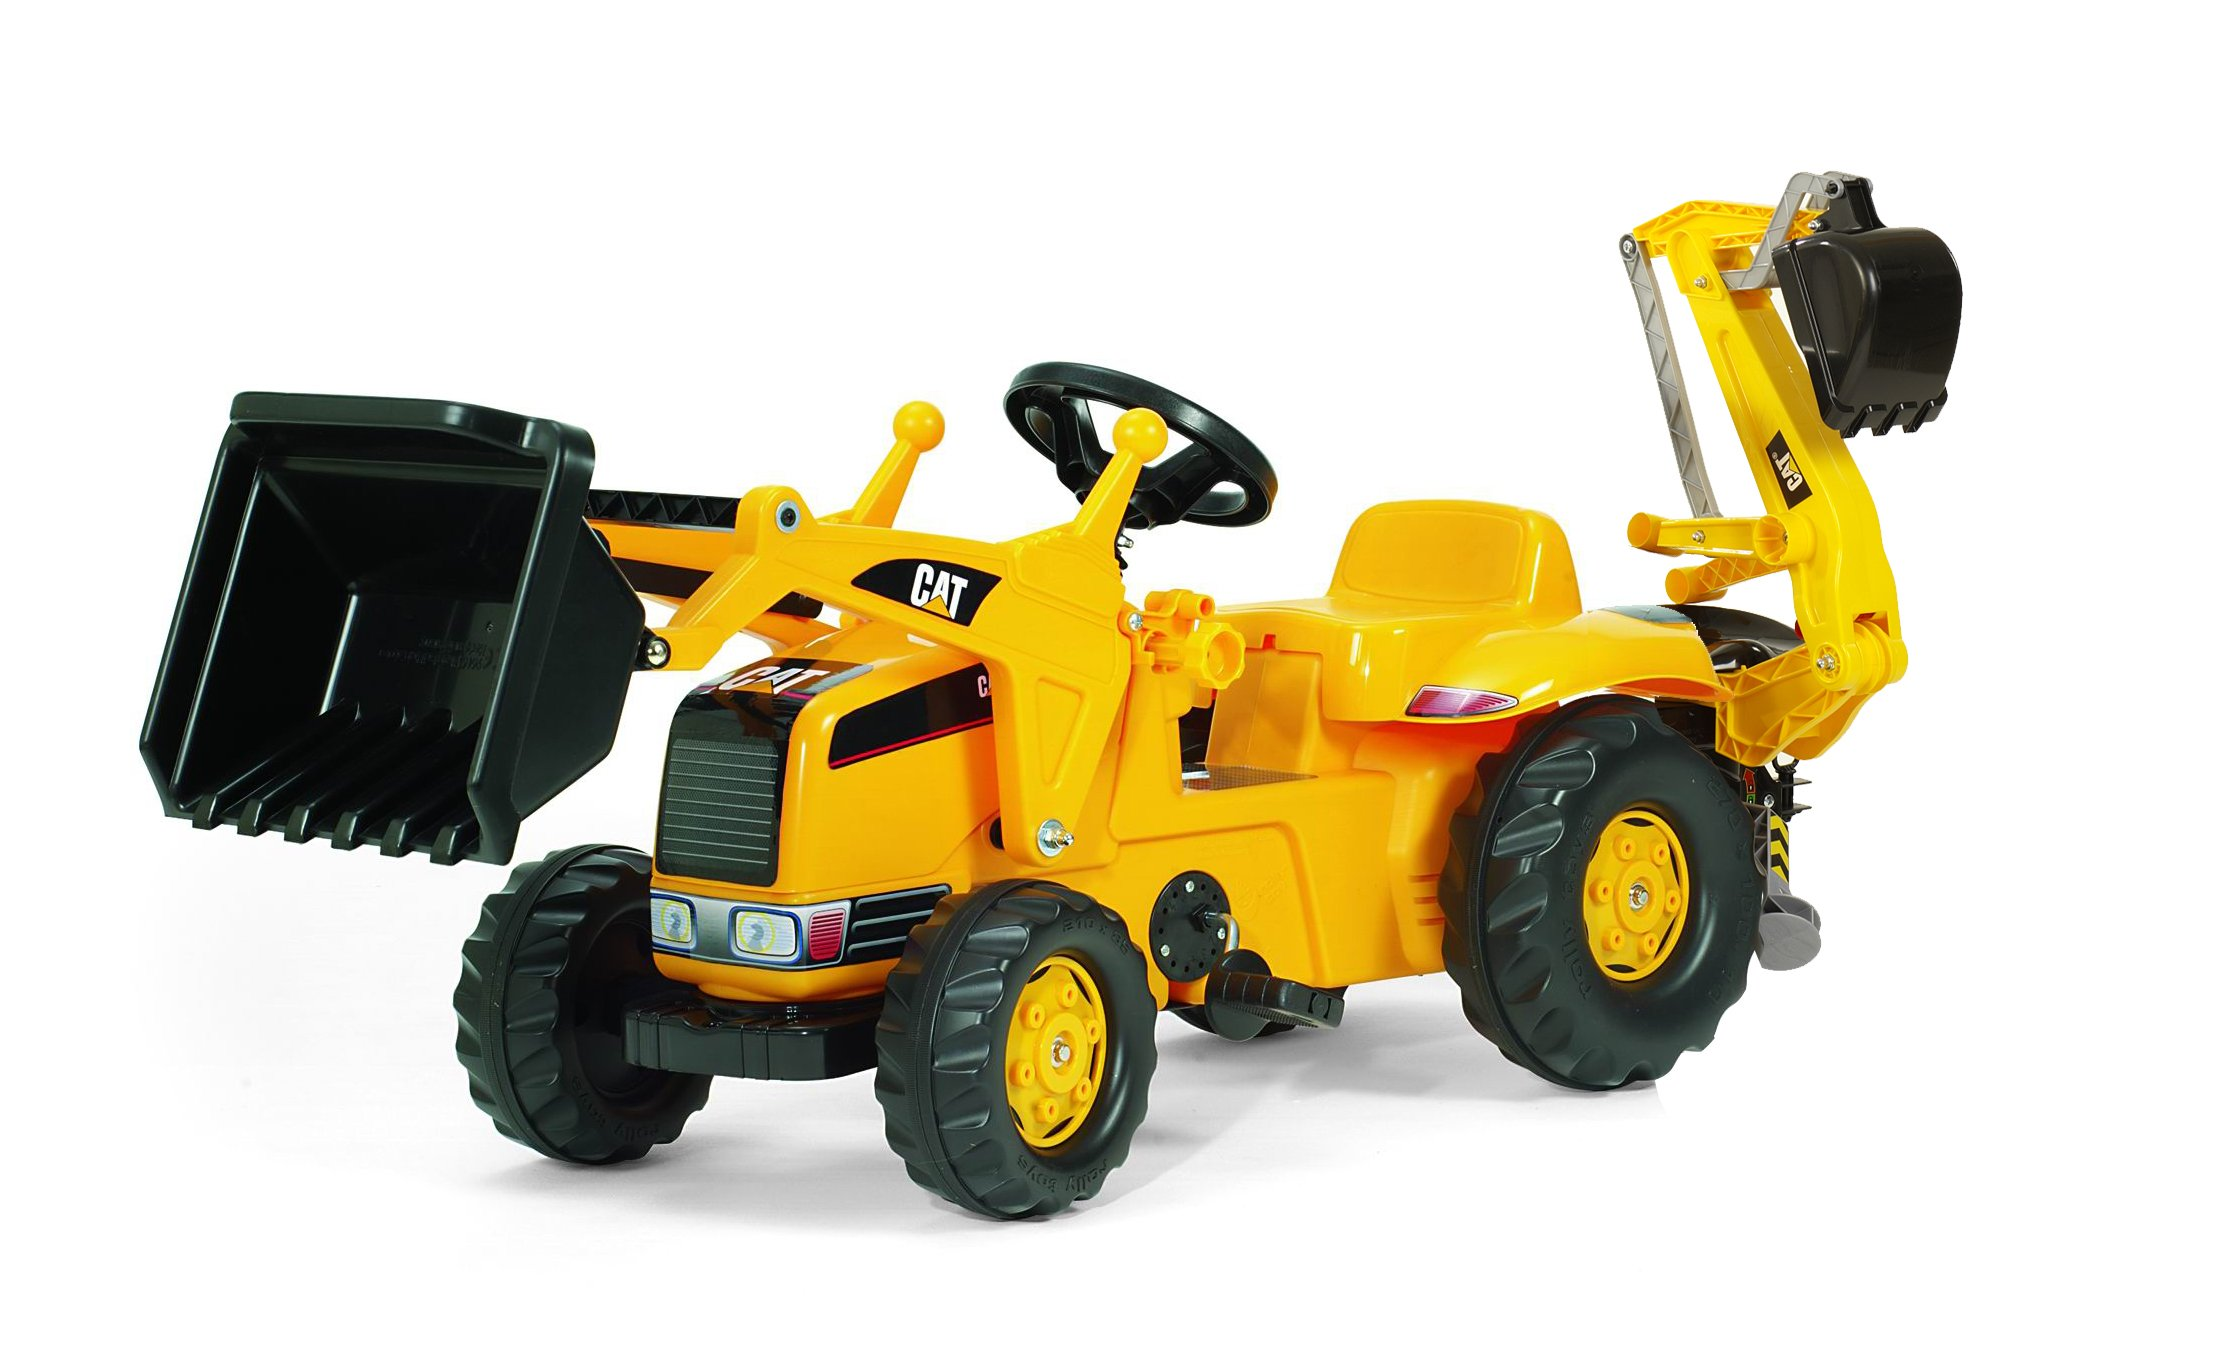 Rolly Toys CAT Kid Tractor with Backhoe